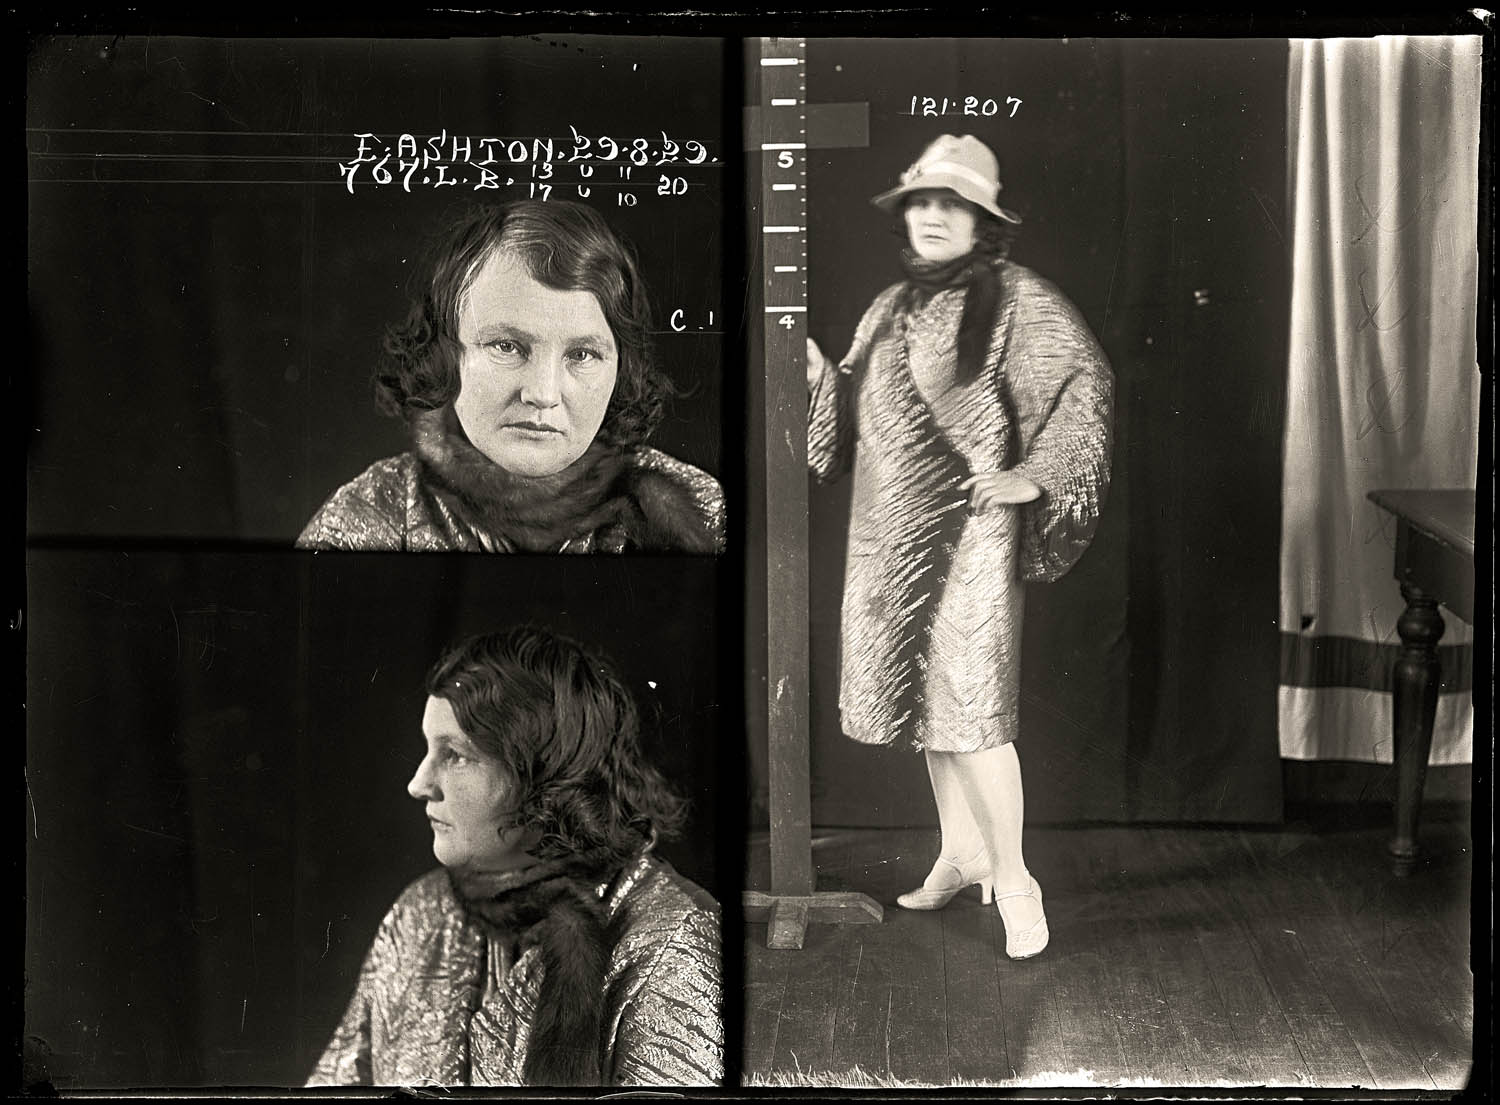 Edith Florence Ashton, criminal record number 767LB, 29 August 1929. State Reformatory for Women, Long Bay, NSW